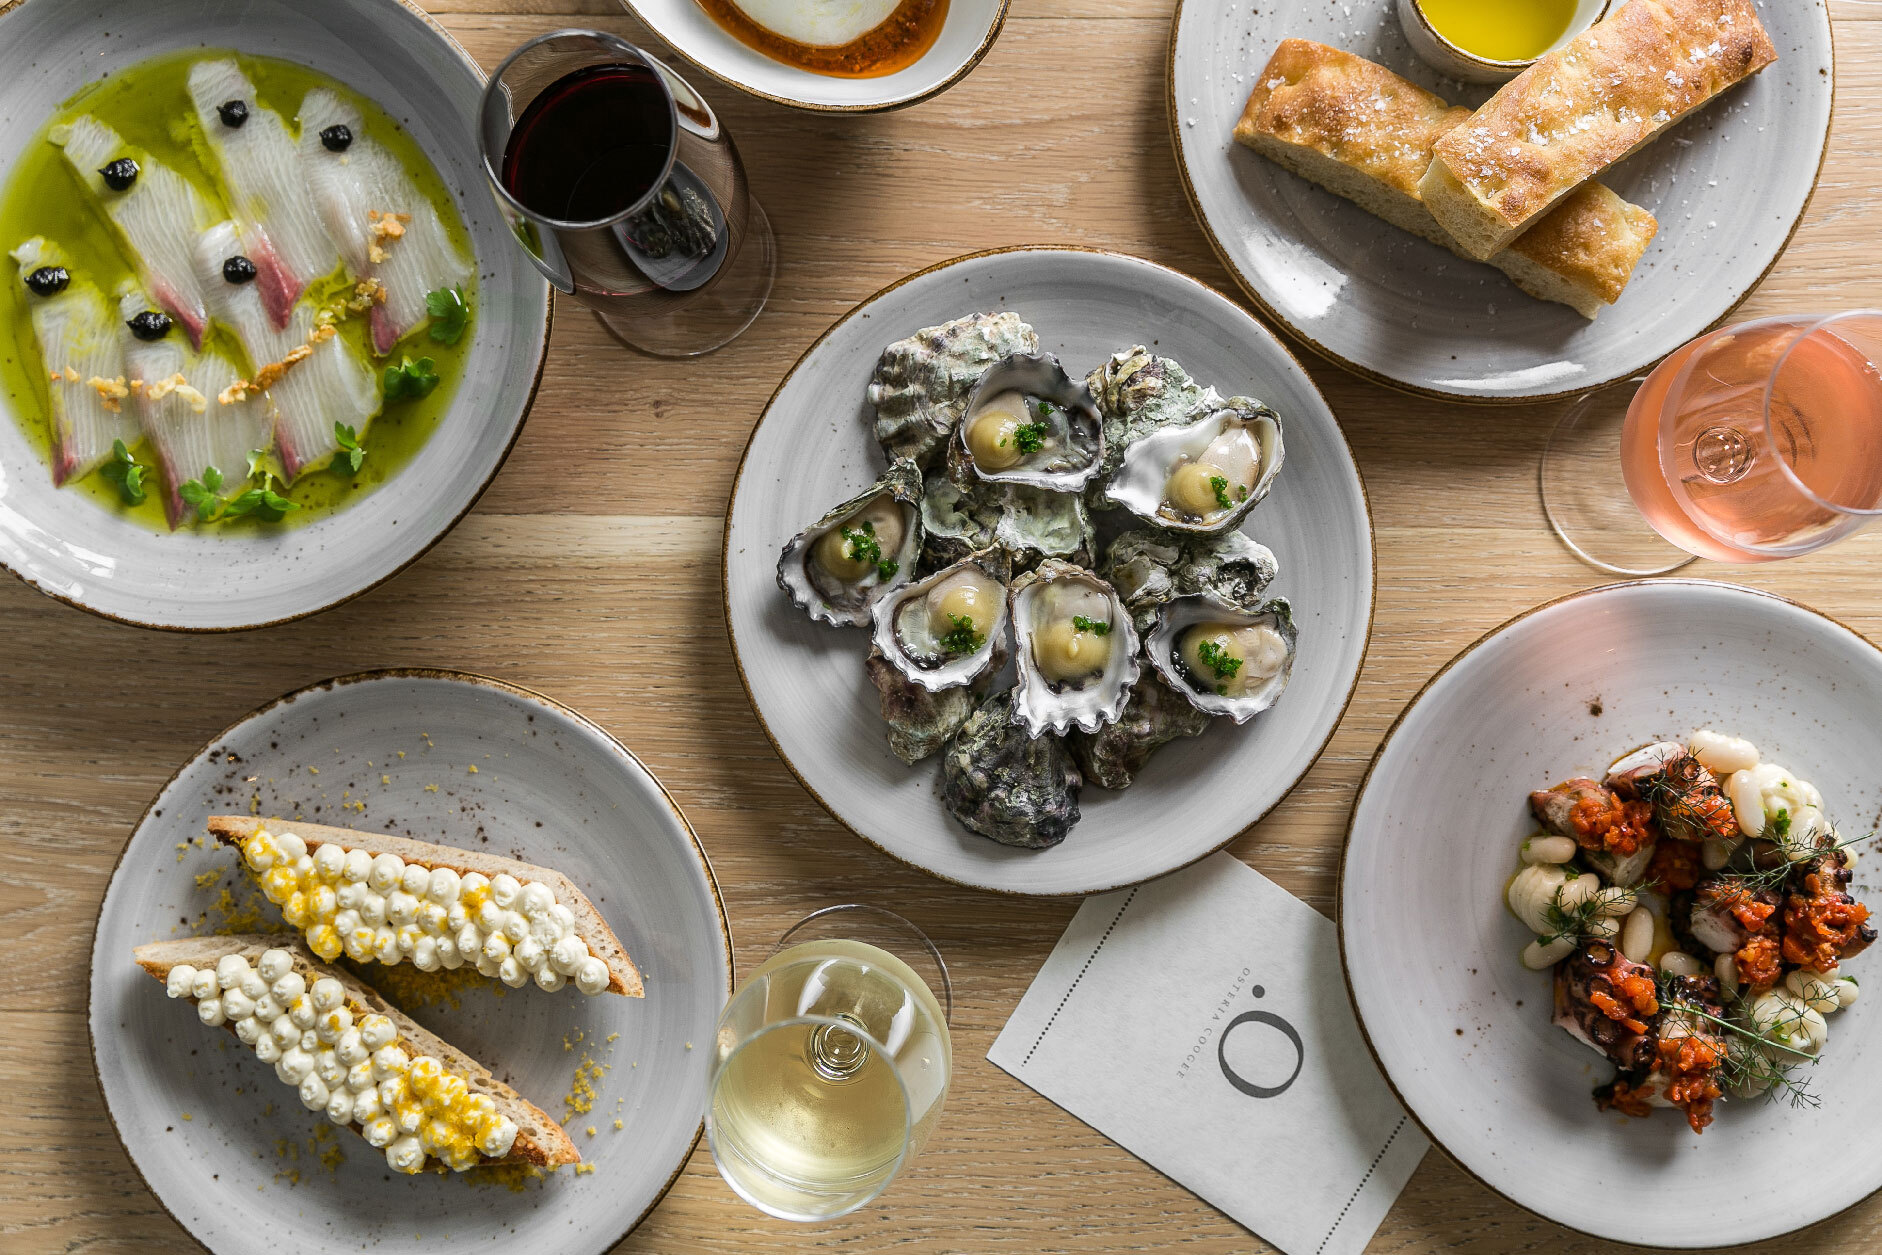 Osteria Coogee oysters and crudo spread